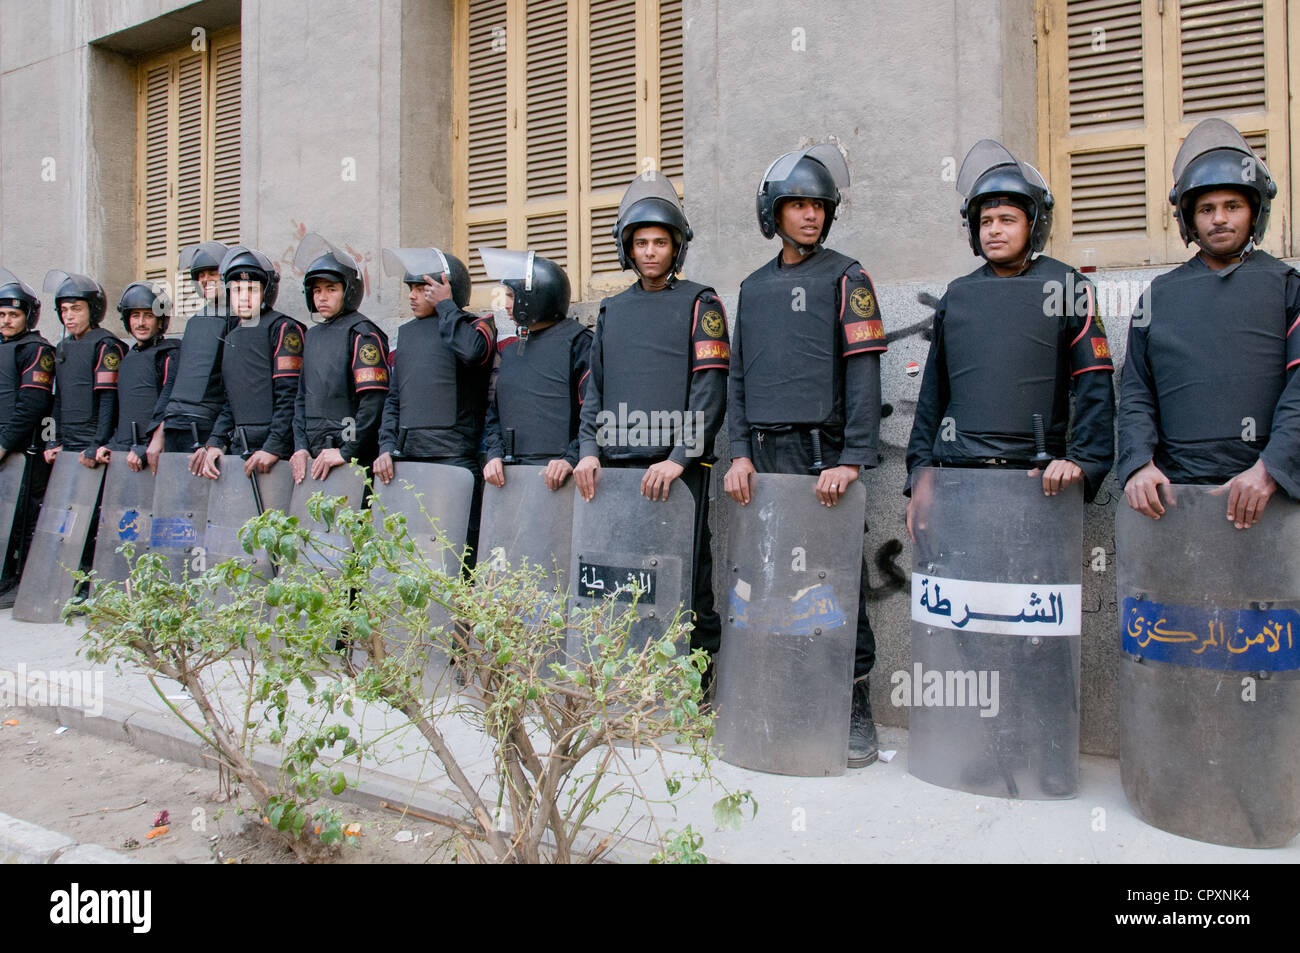 Egyptian security forces in riot gear waiting next to demonstration in downtown Cairo Egypt - Stock Image